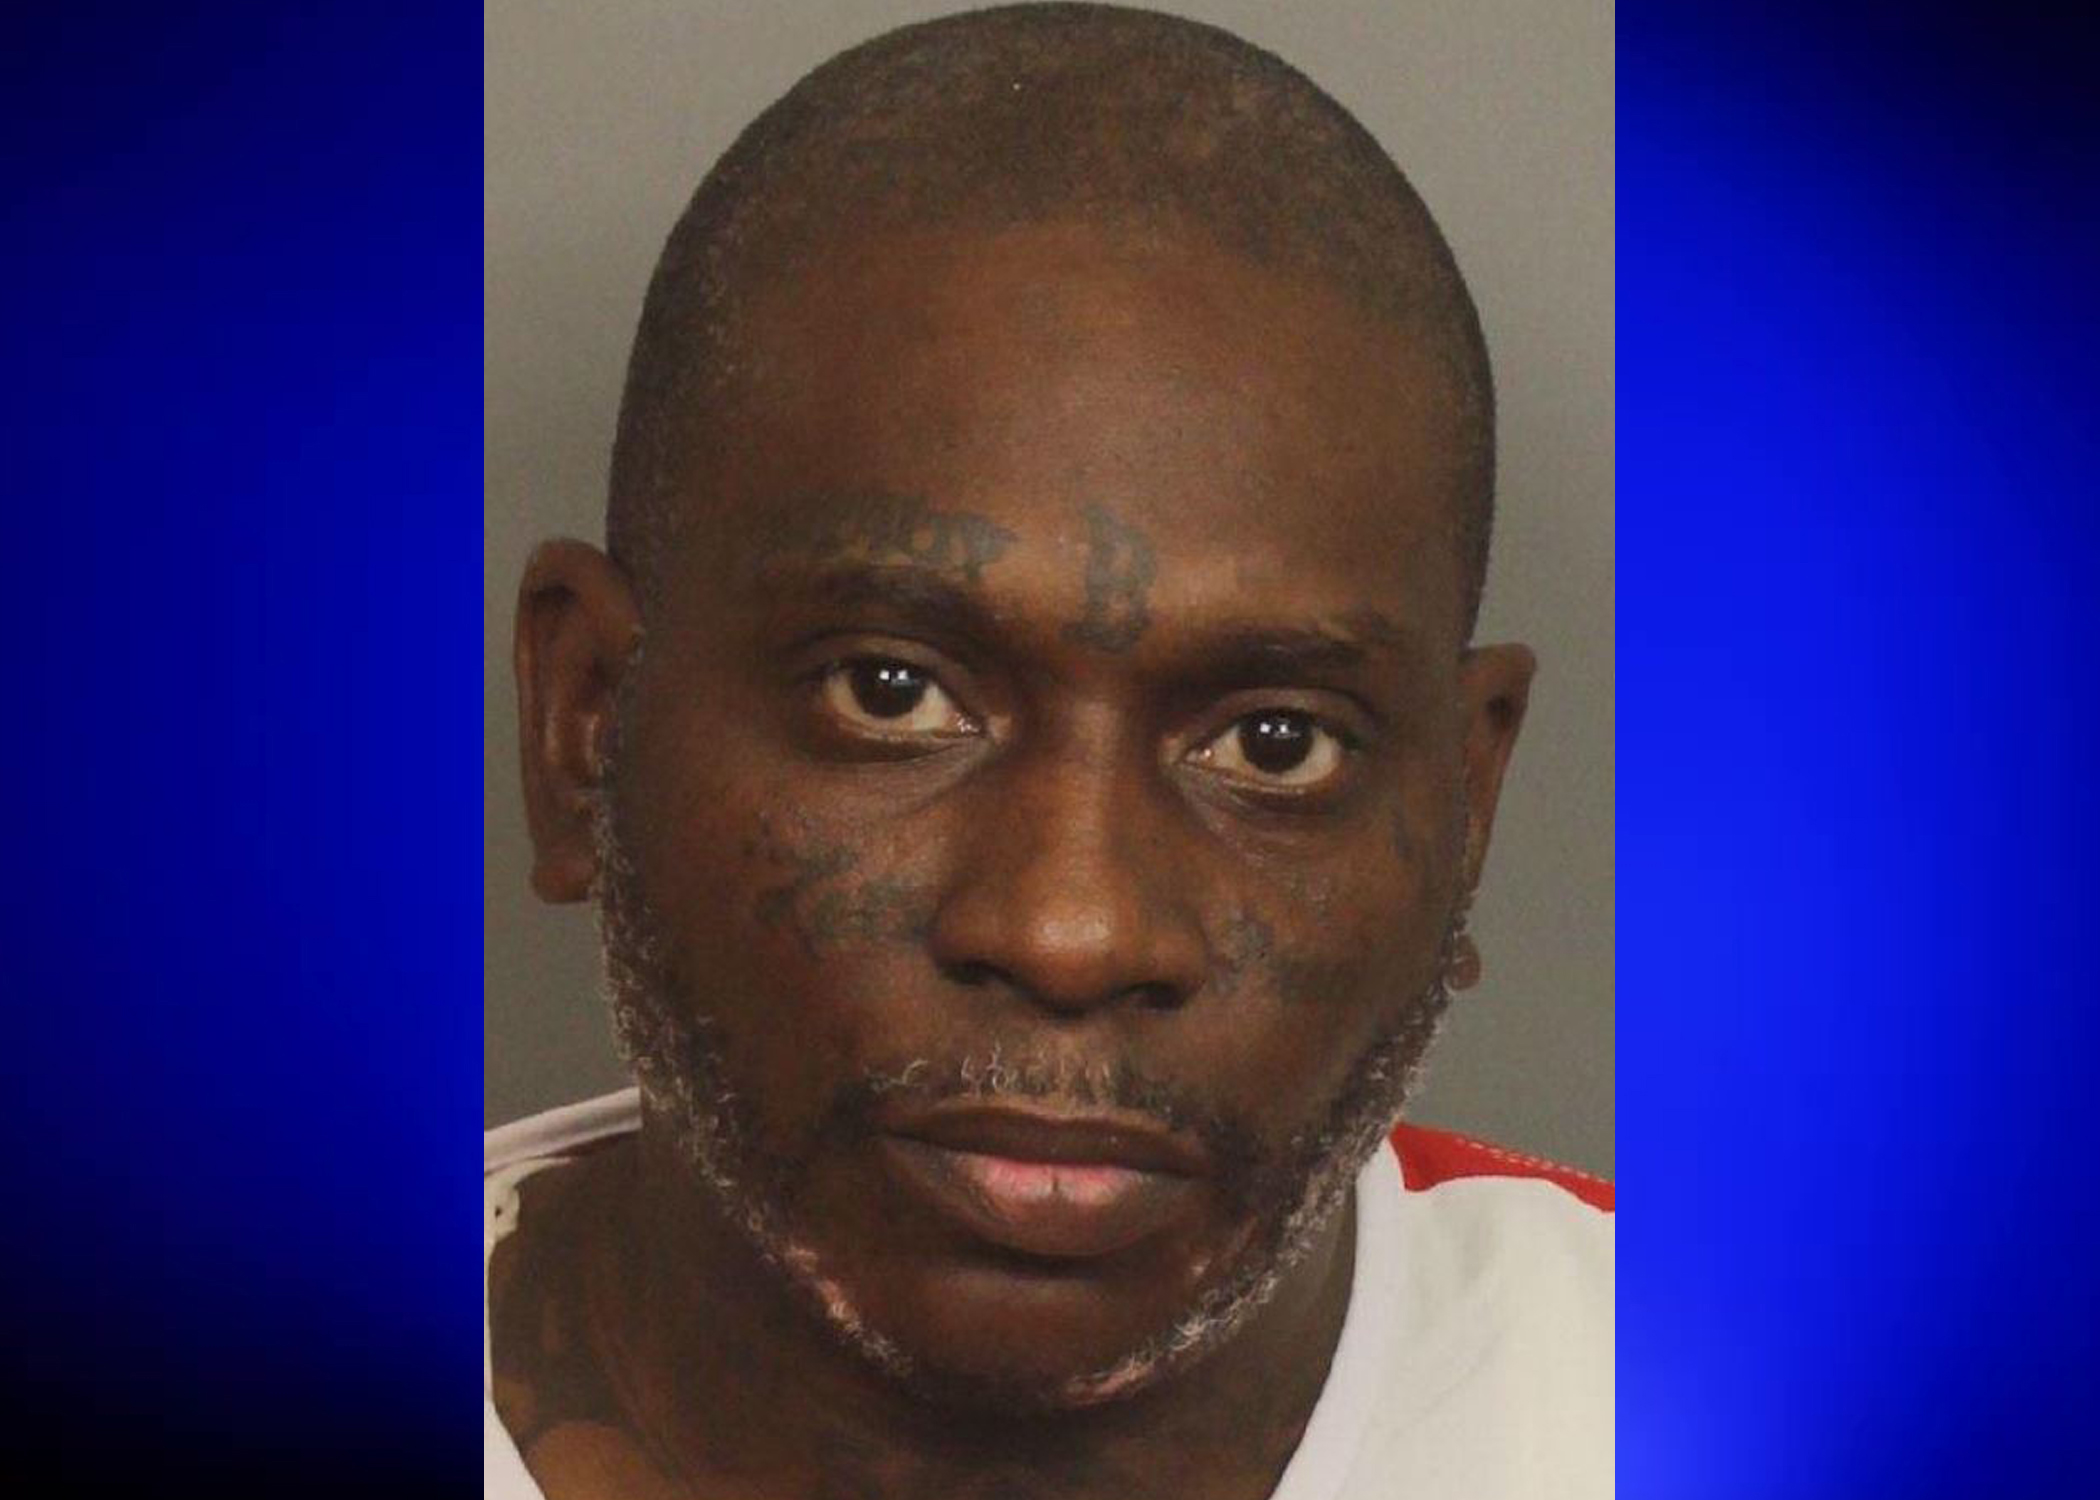 Man wanted for deadly Birmingham home invasion captured in Nashville